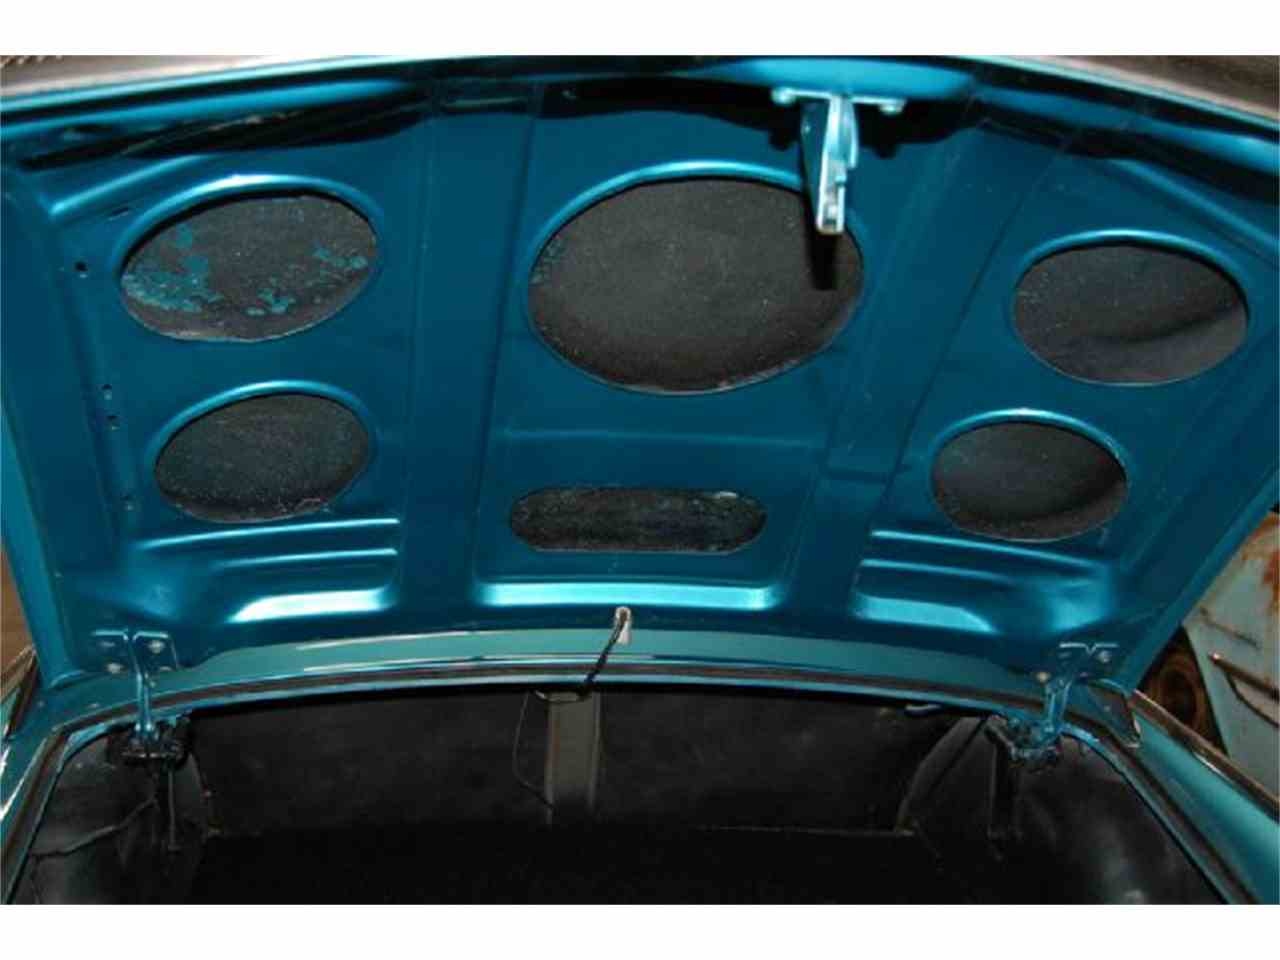 Large Picture of Classic '62 Studebaker Hawk located in St Simons Island Georgia - $10,900.00 - A8W0